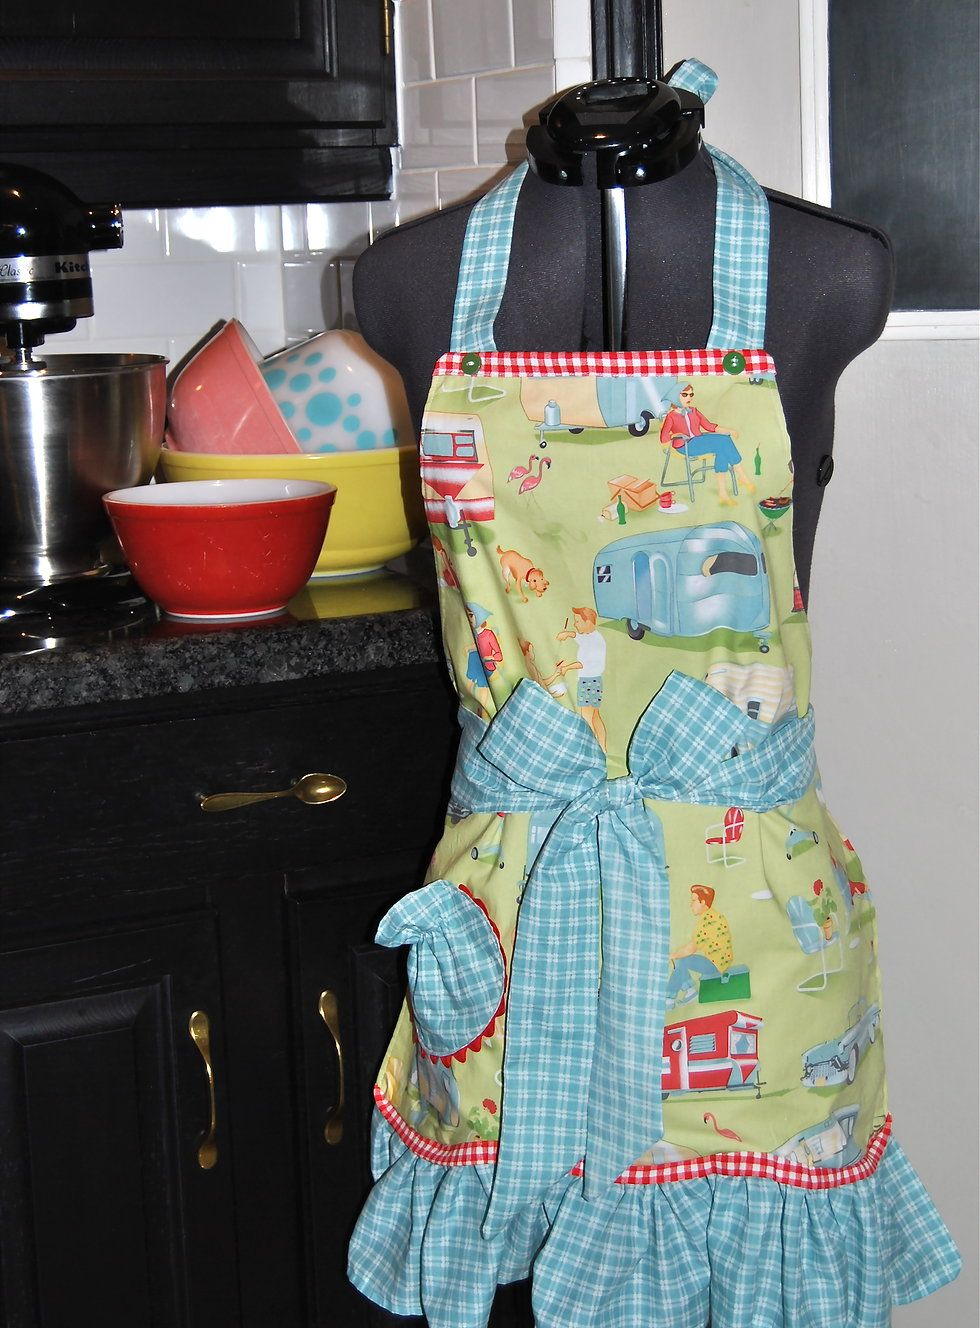 Retro Apron in super summer camping and pic-nic print with a fun aqua and red gingham.  Have fun in the kitchen cooking with an apron like this on.